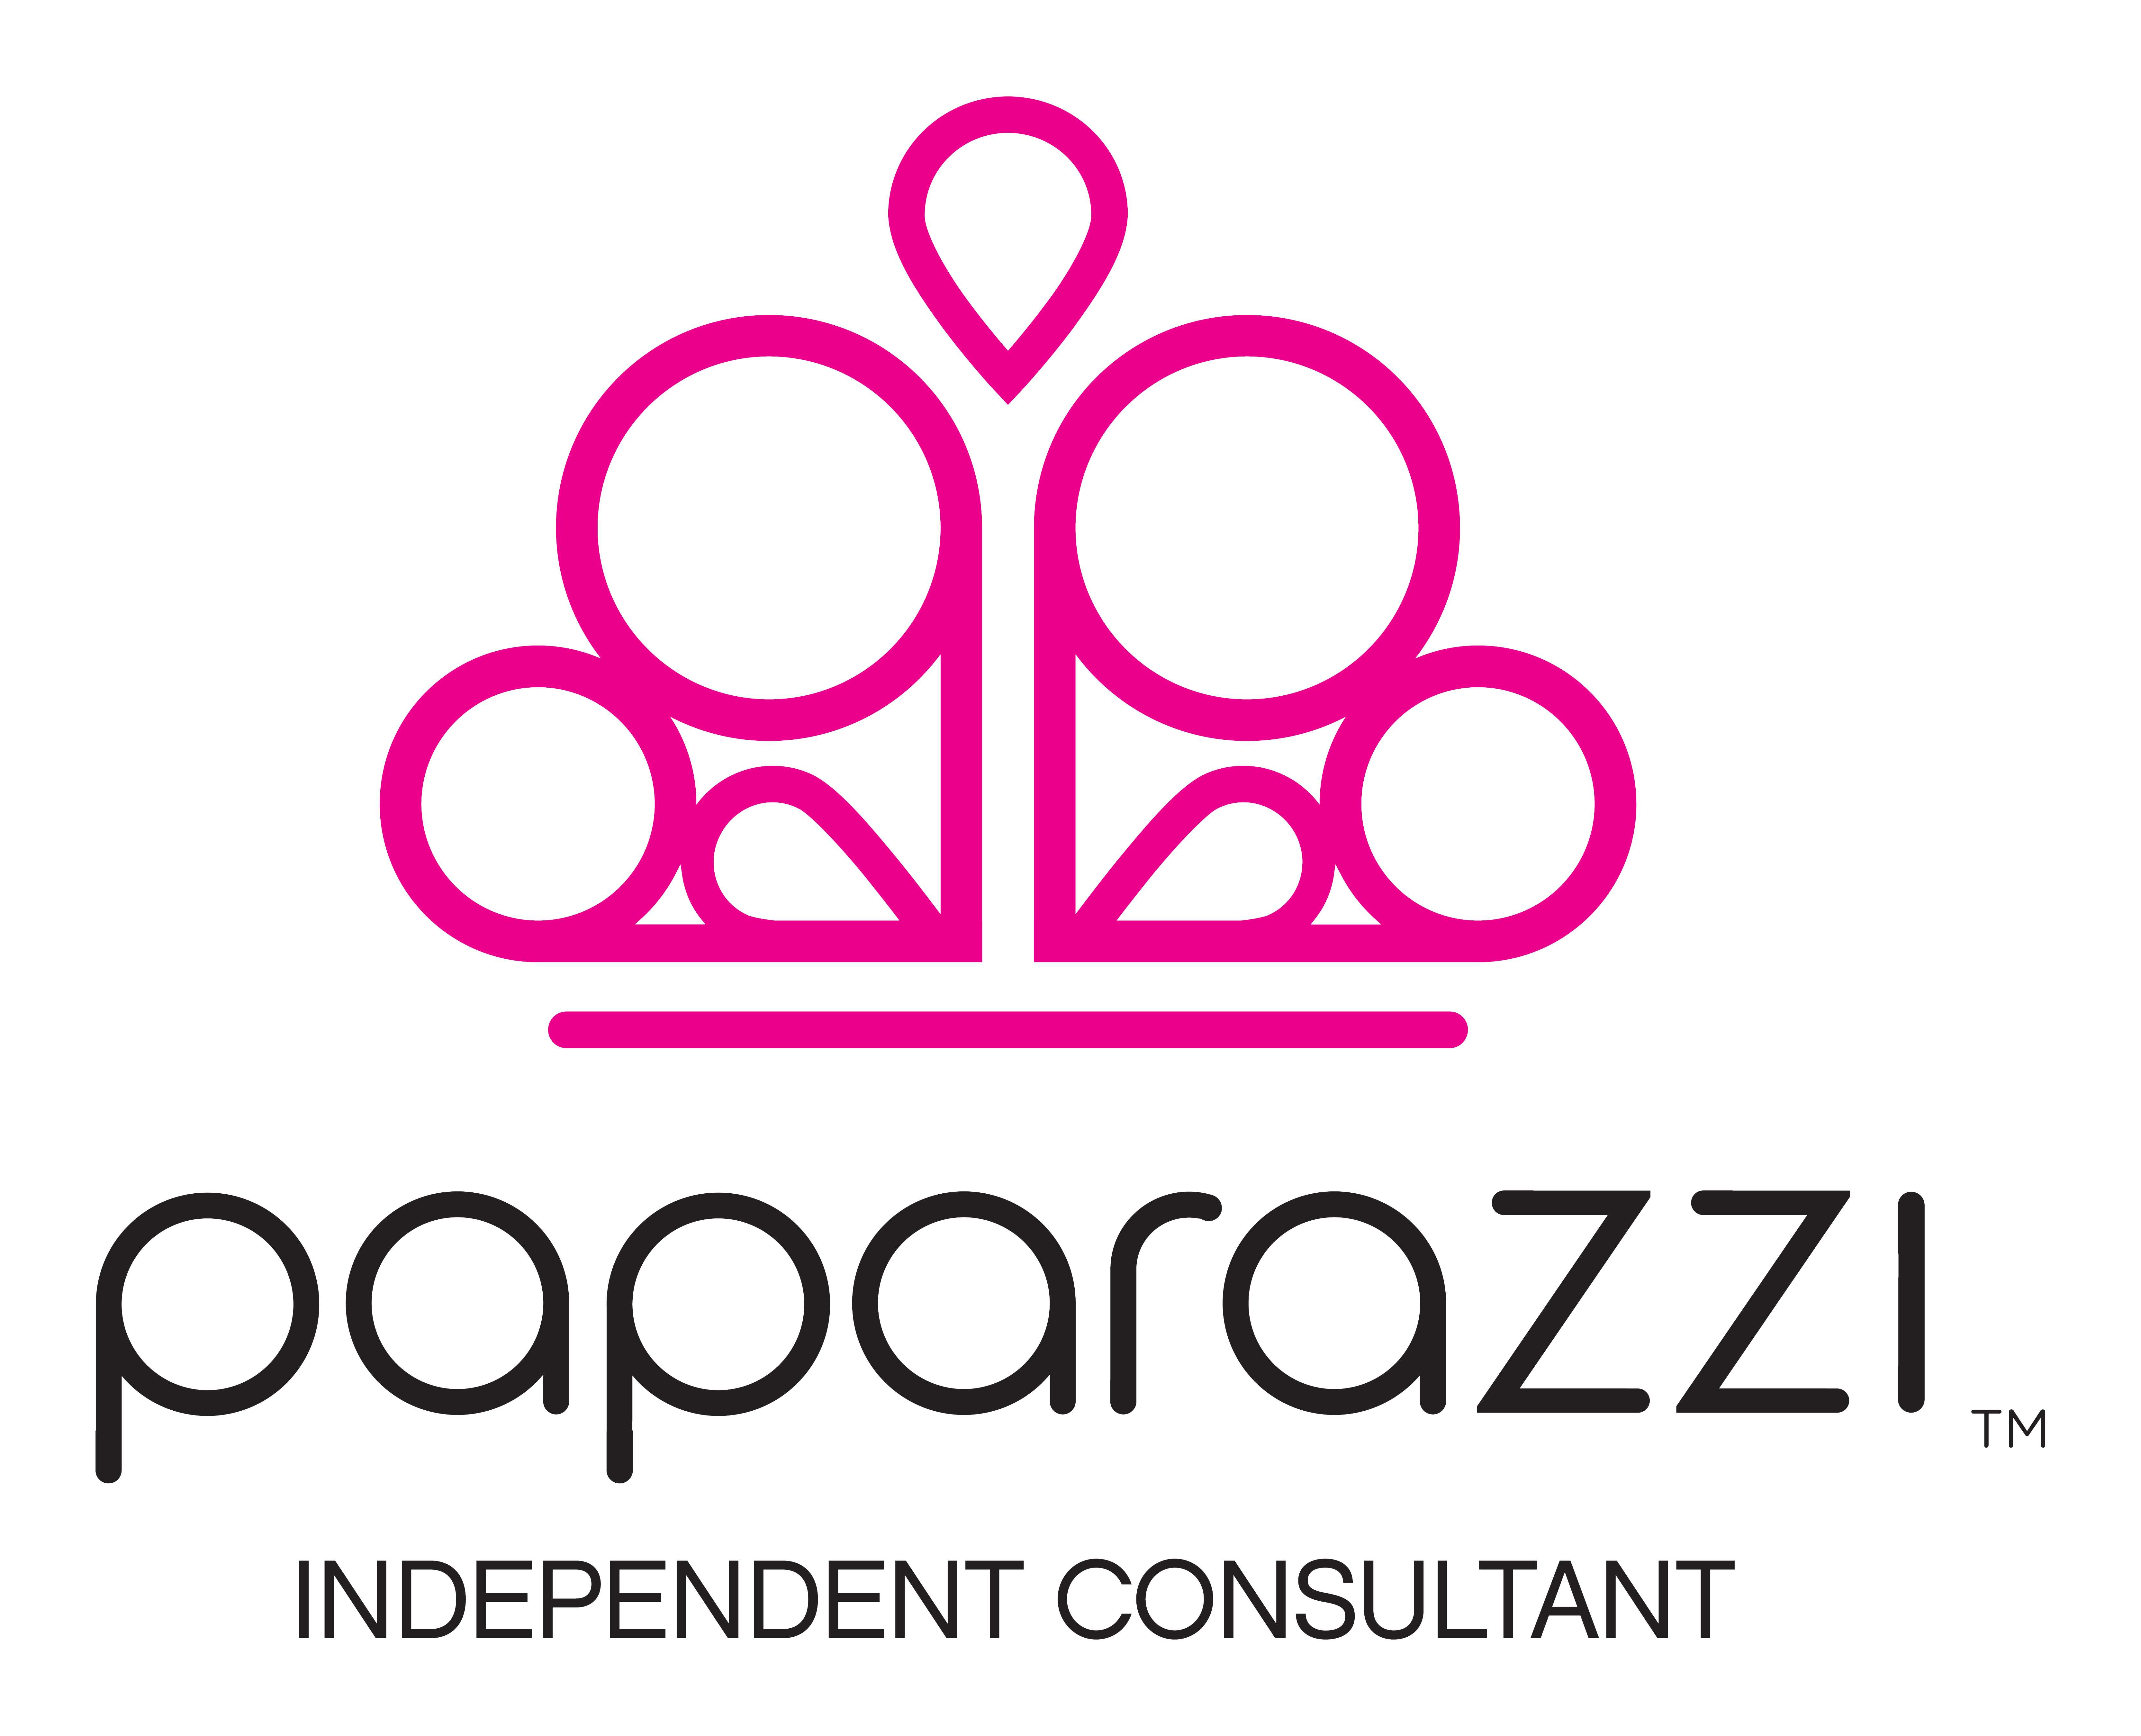 Free House Design Online Download Paparazzi Free Png Transparent Image And Clipart